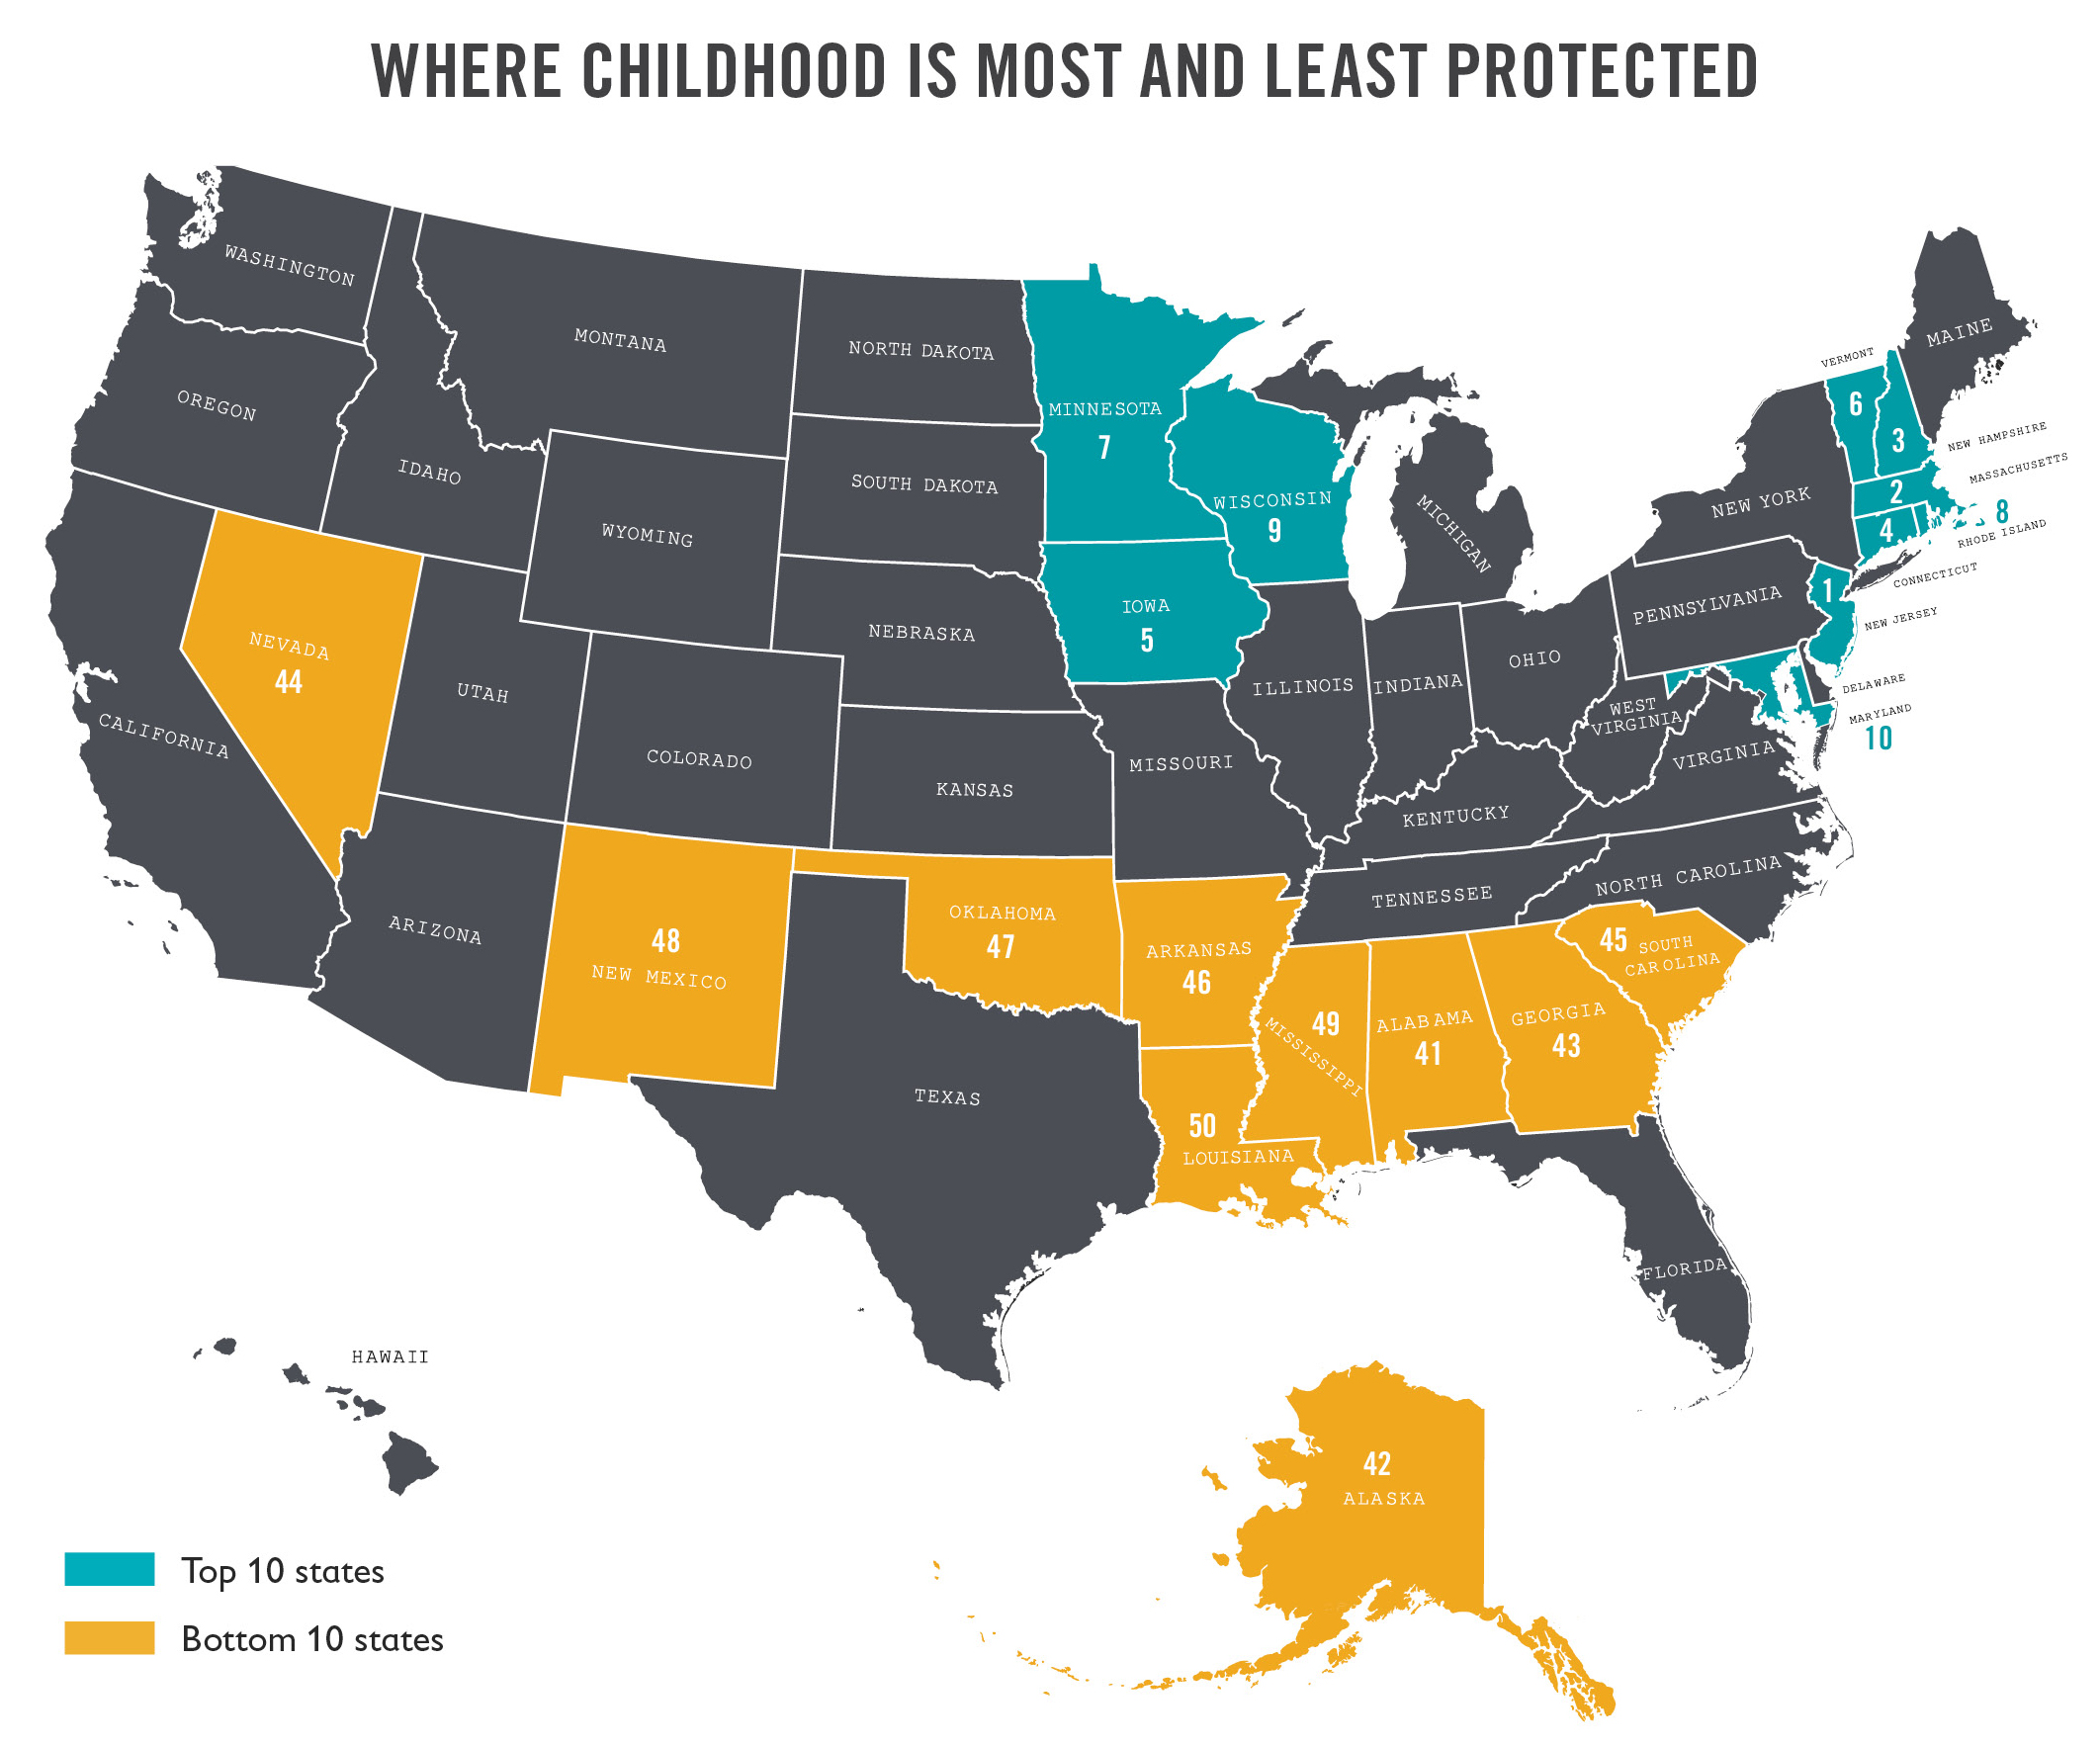 Child Well-Being Depends on Region